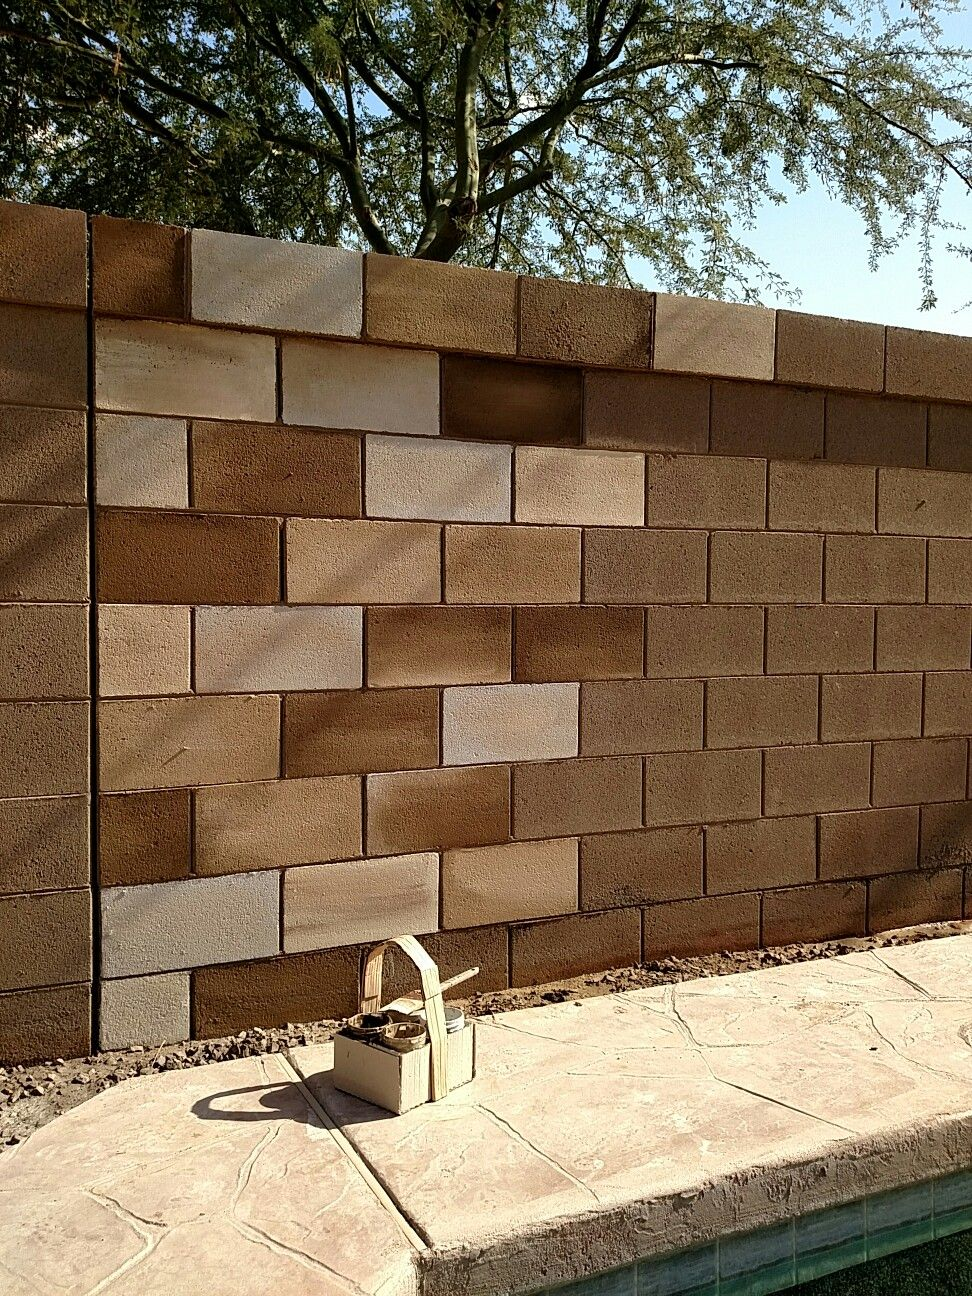 Painting a cinder block wall gives it a really cool effect, I love these  contrasting browns!